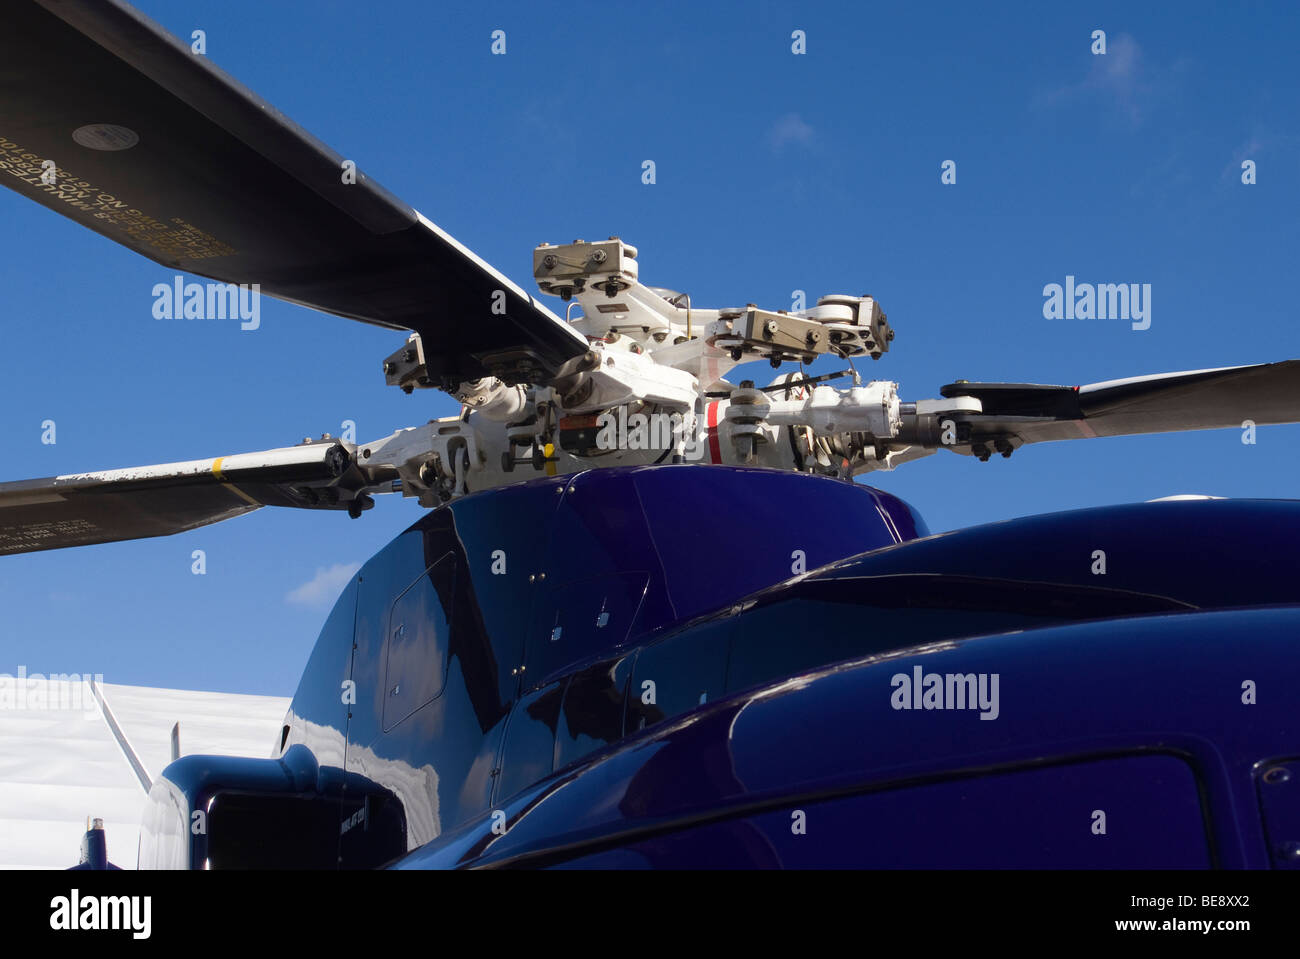 Gearbox and Rotor Blade Assembly of Sikorsky S-76C+ Helicopter G-BYOM at helitech Trade Show Duxford England United - Stock Image